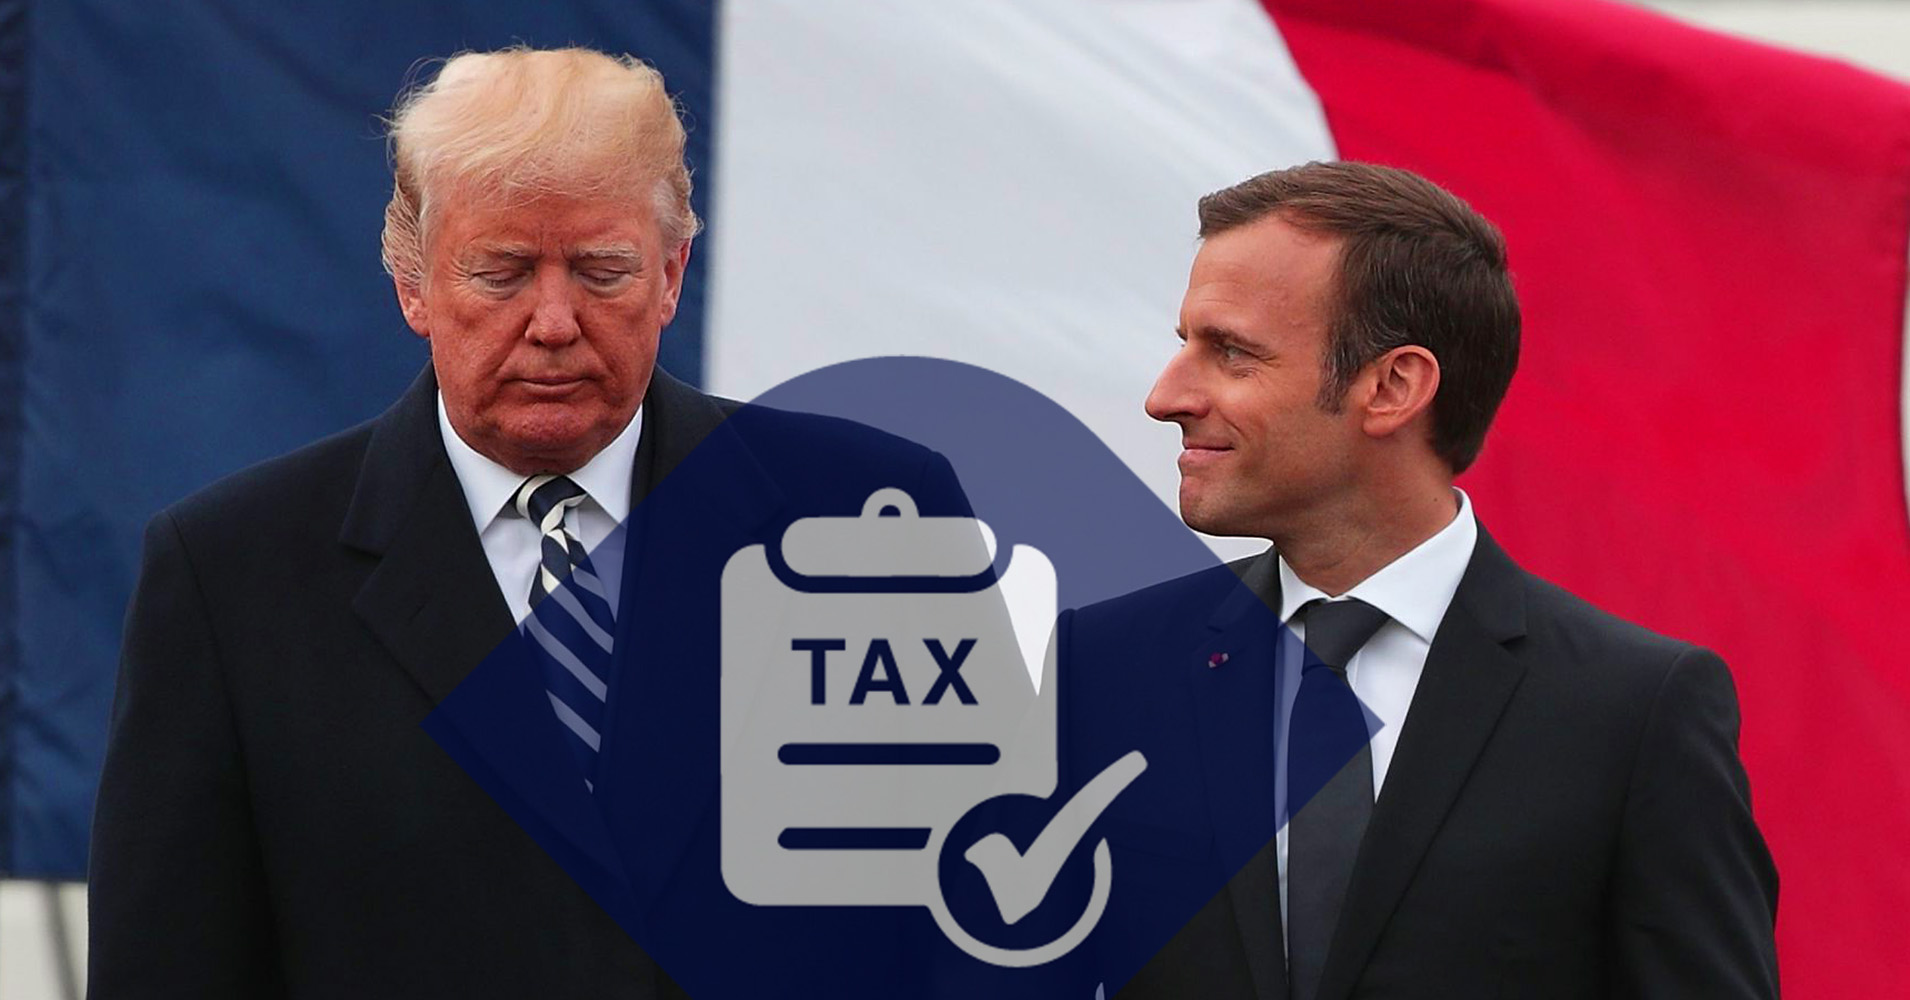 Digital Tax approved by France on American tech giants